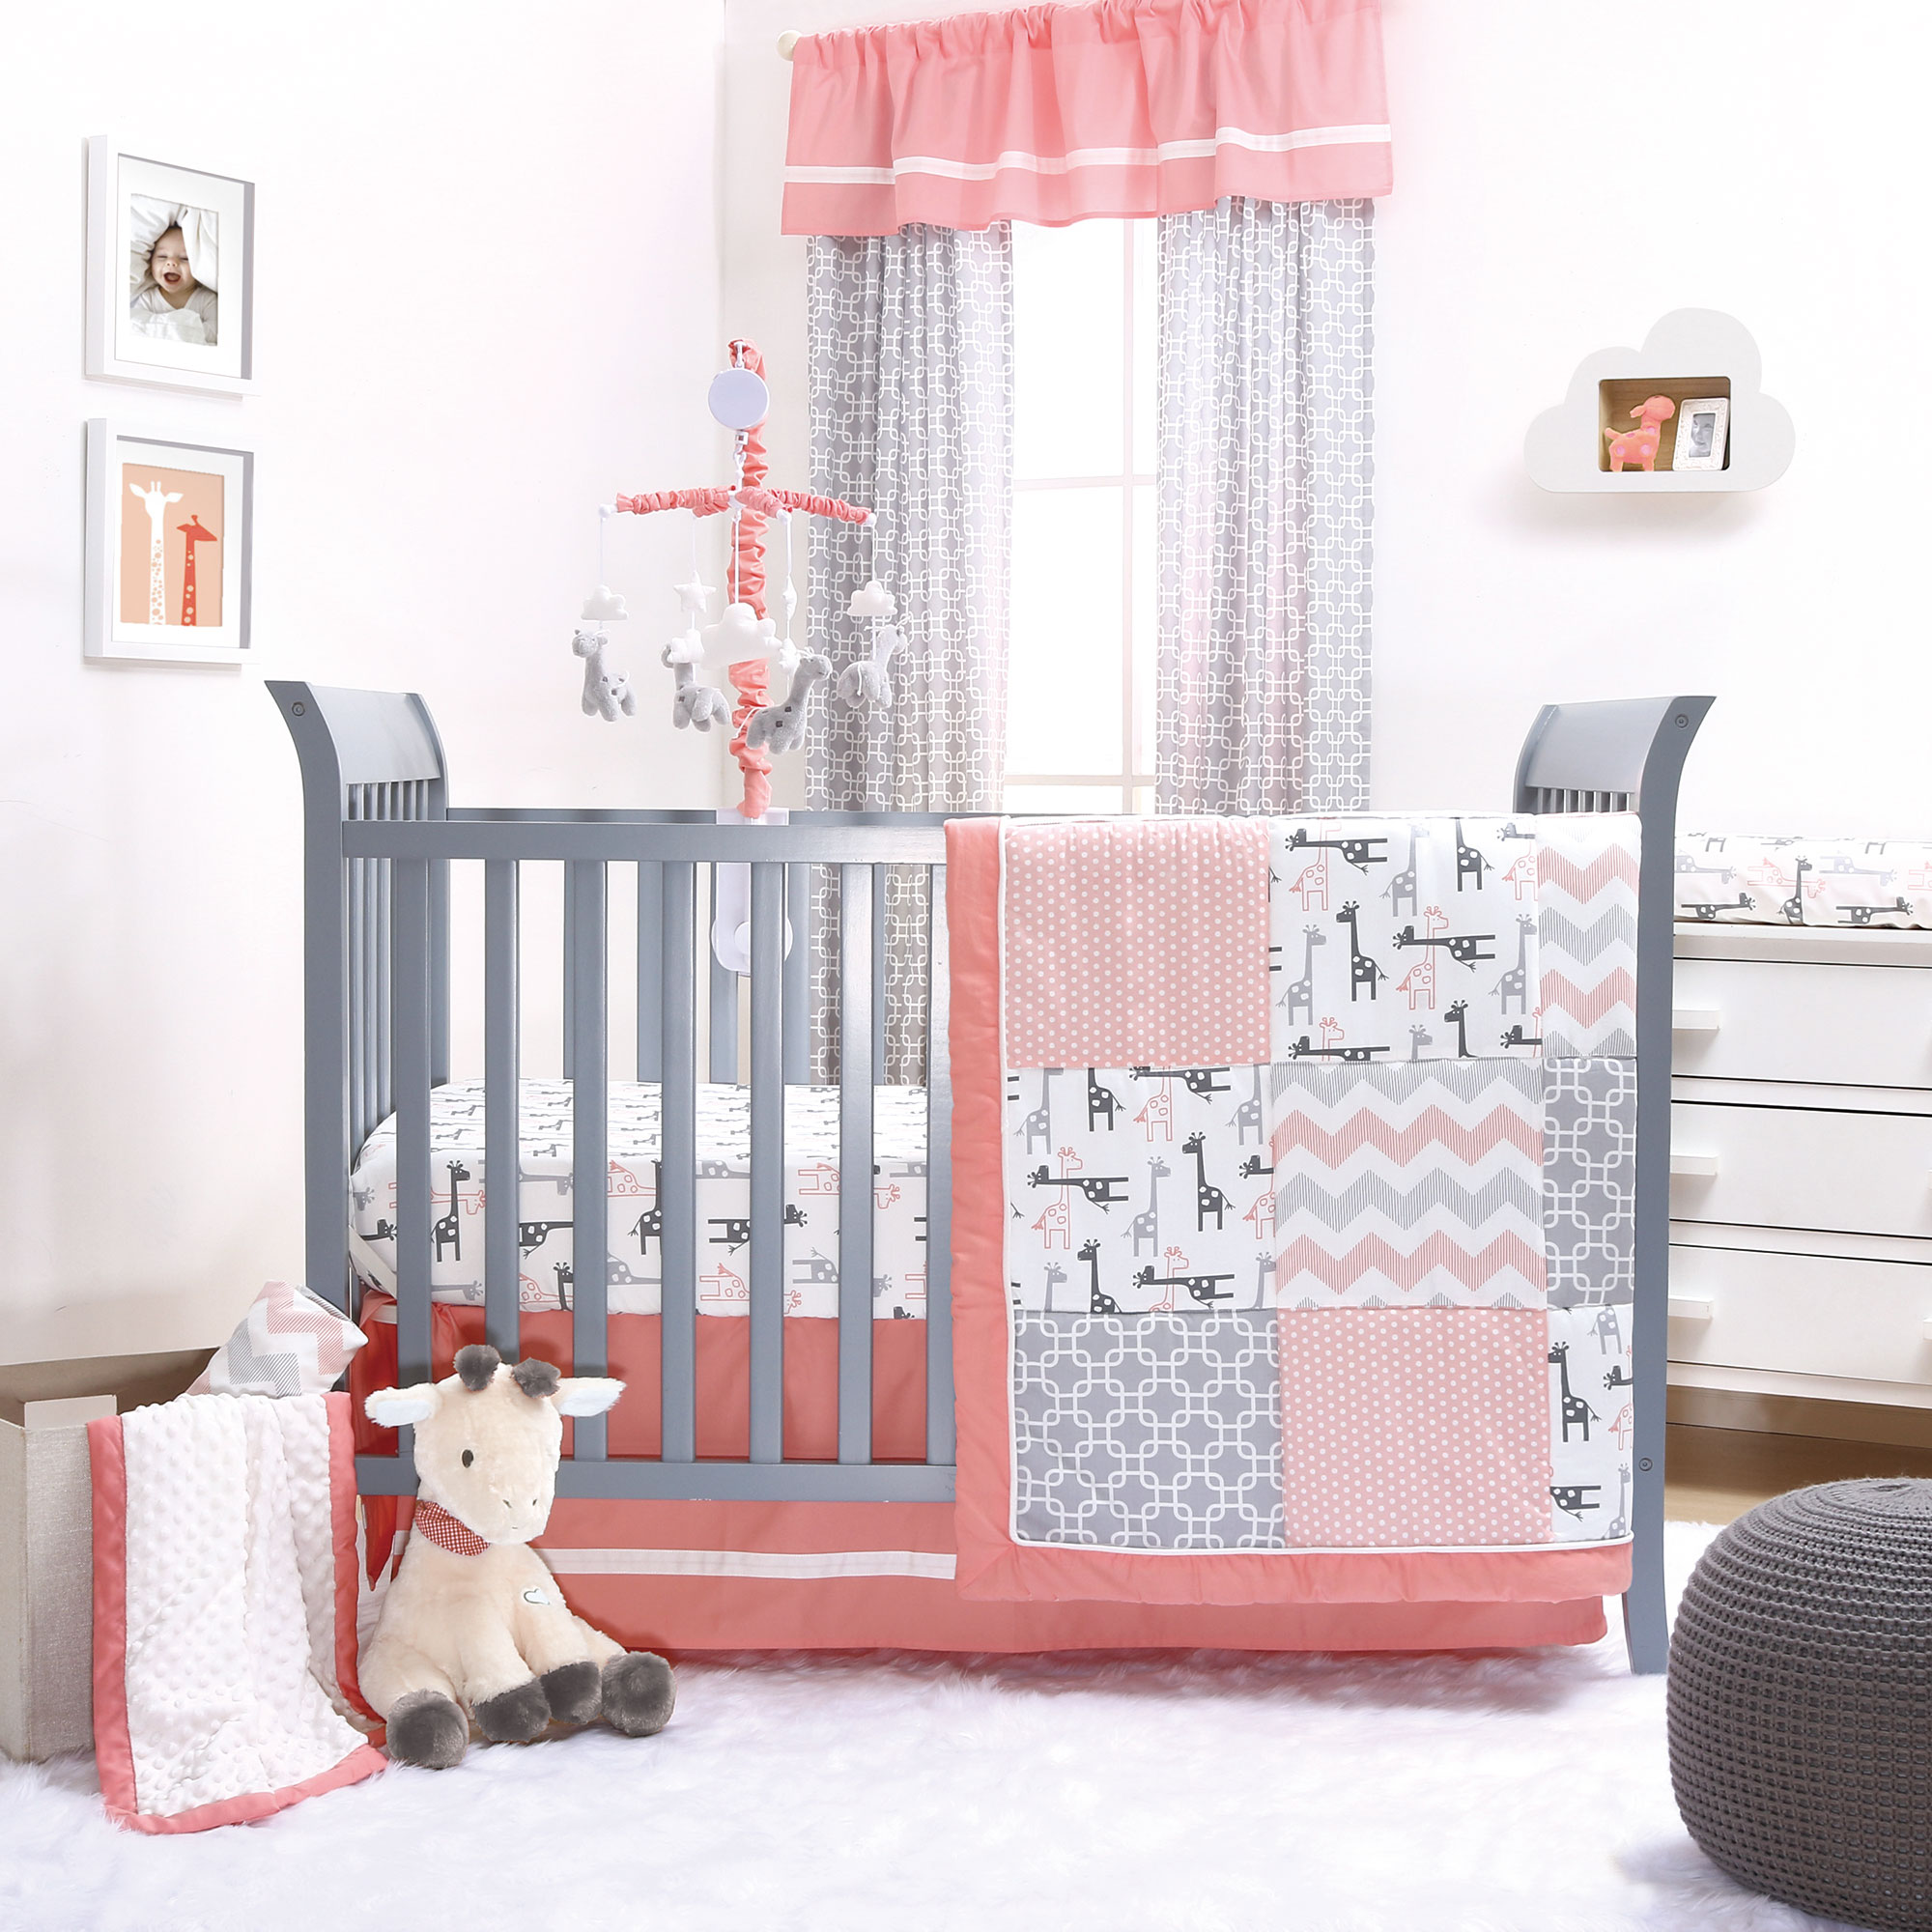 The Peanut Shell 3 Piece Baby Crib Bedding Set - Uptown Girl Coral and Grey Giraffe Patchwork - 100% Cotton Fabrics